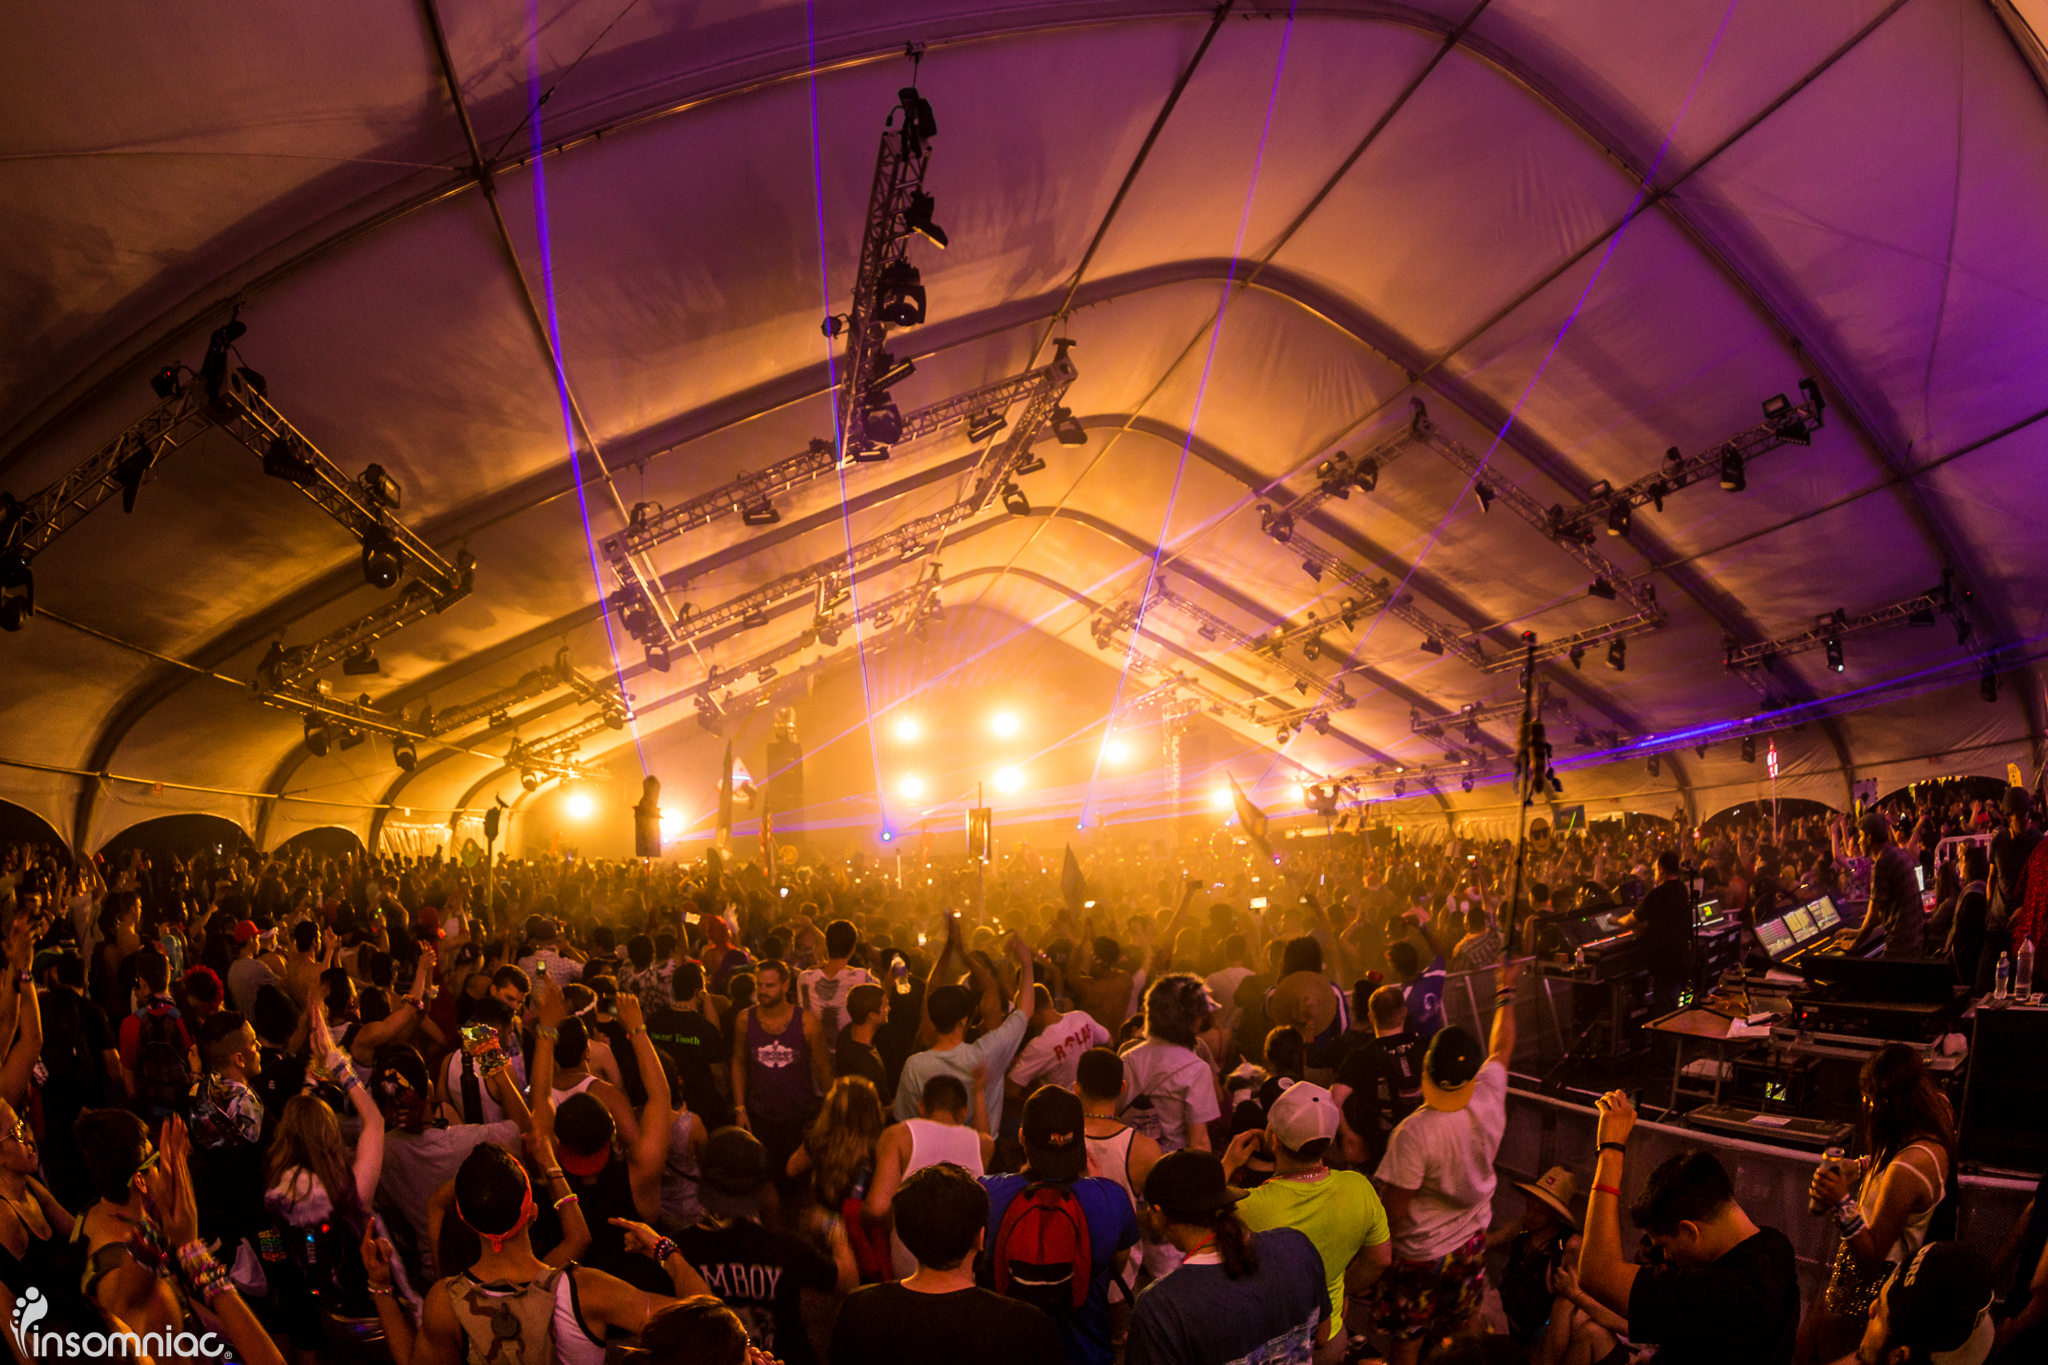 nocturnal_2015_iwally_alivecoverage-4.jpg